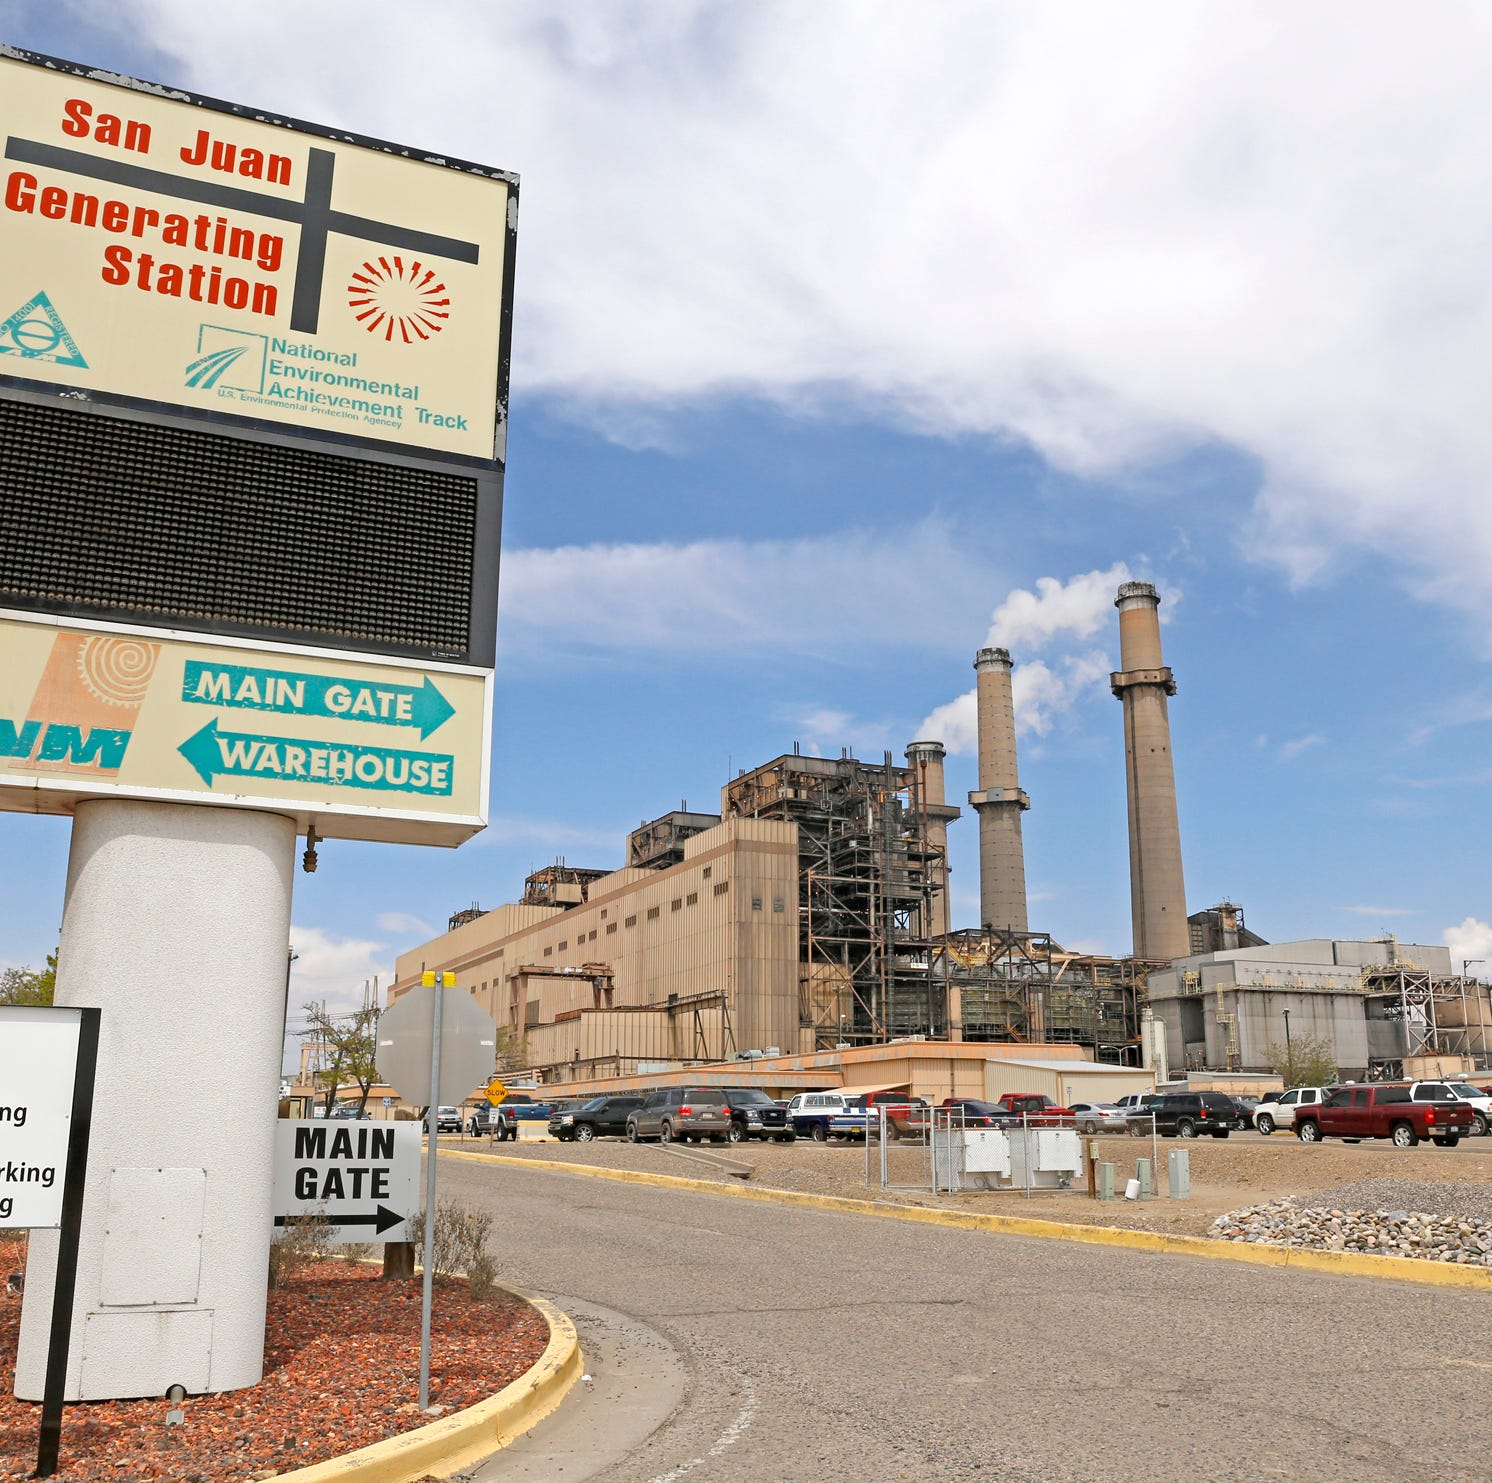 House passes legislation related to San Juan Generating Station's closure